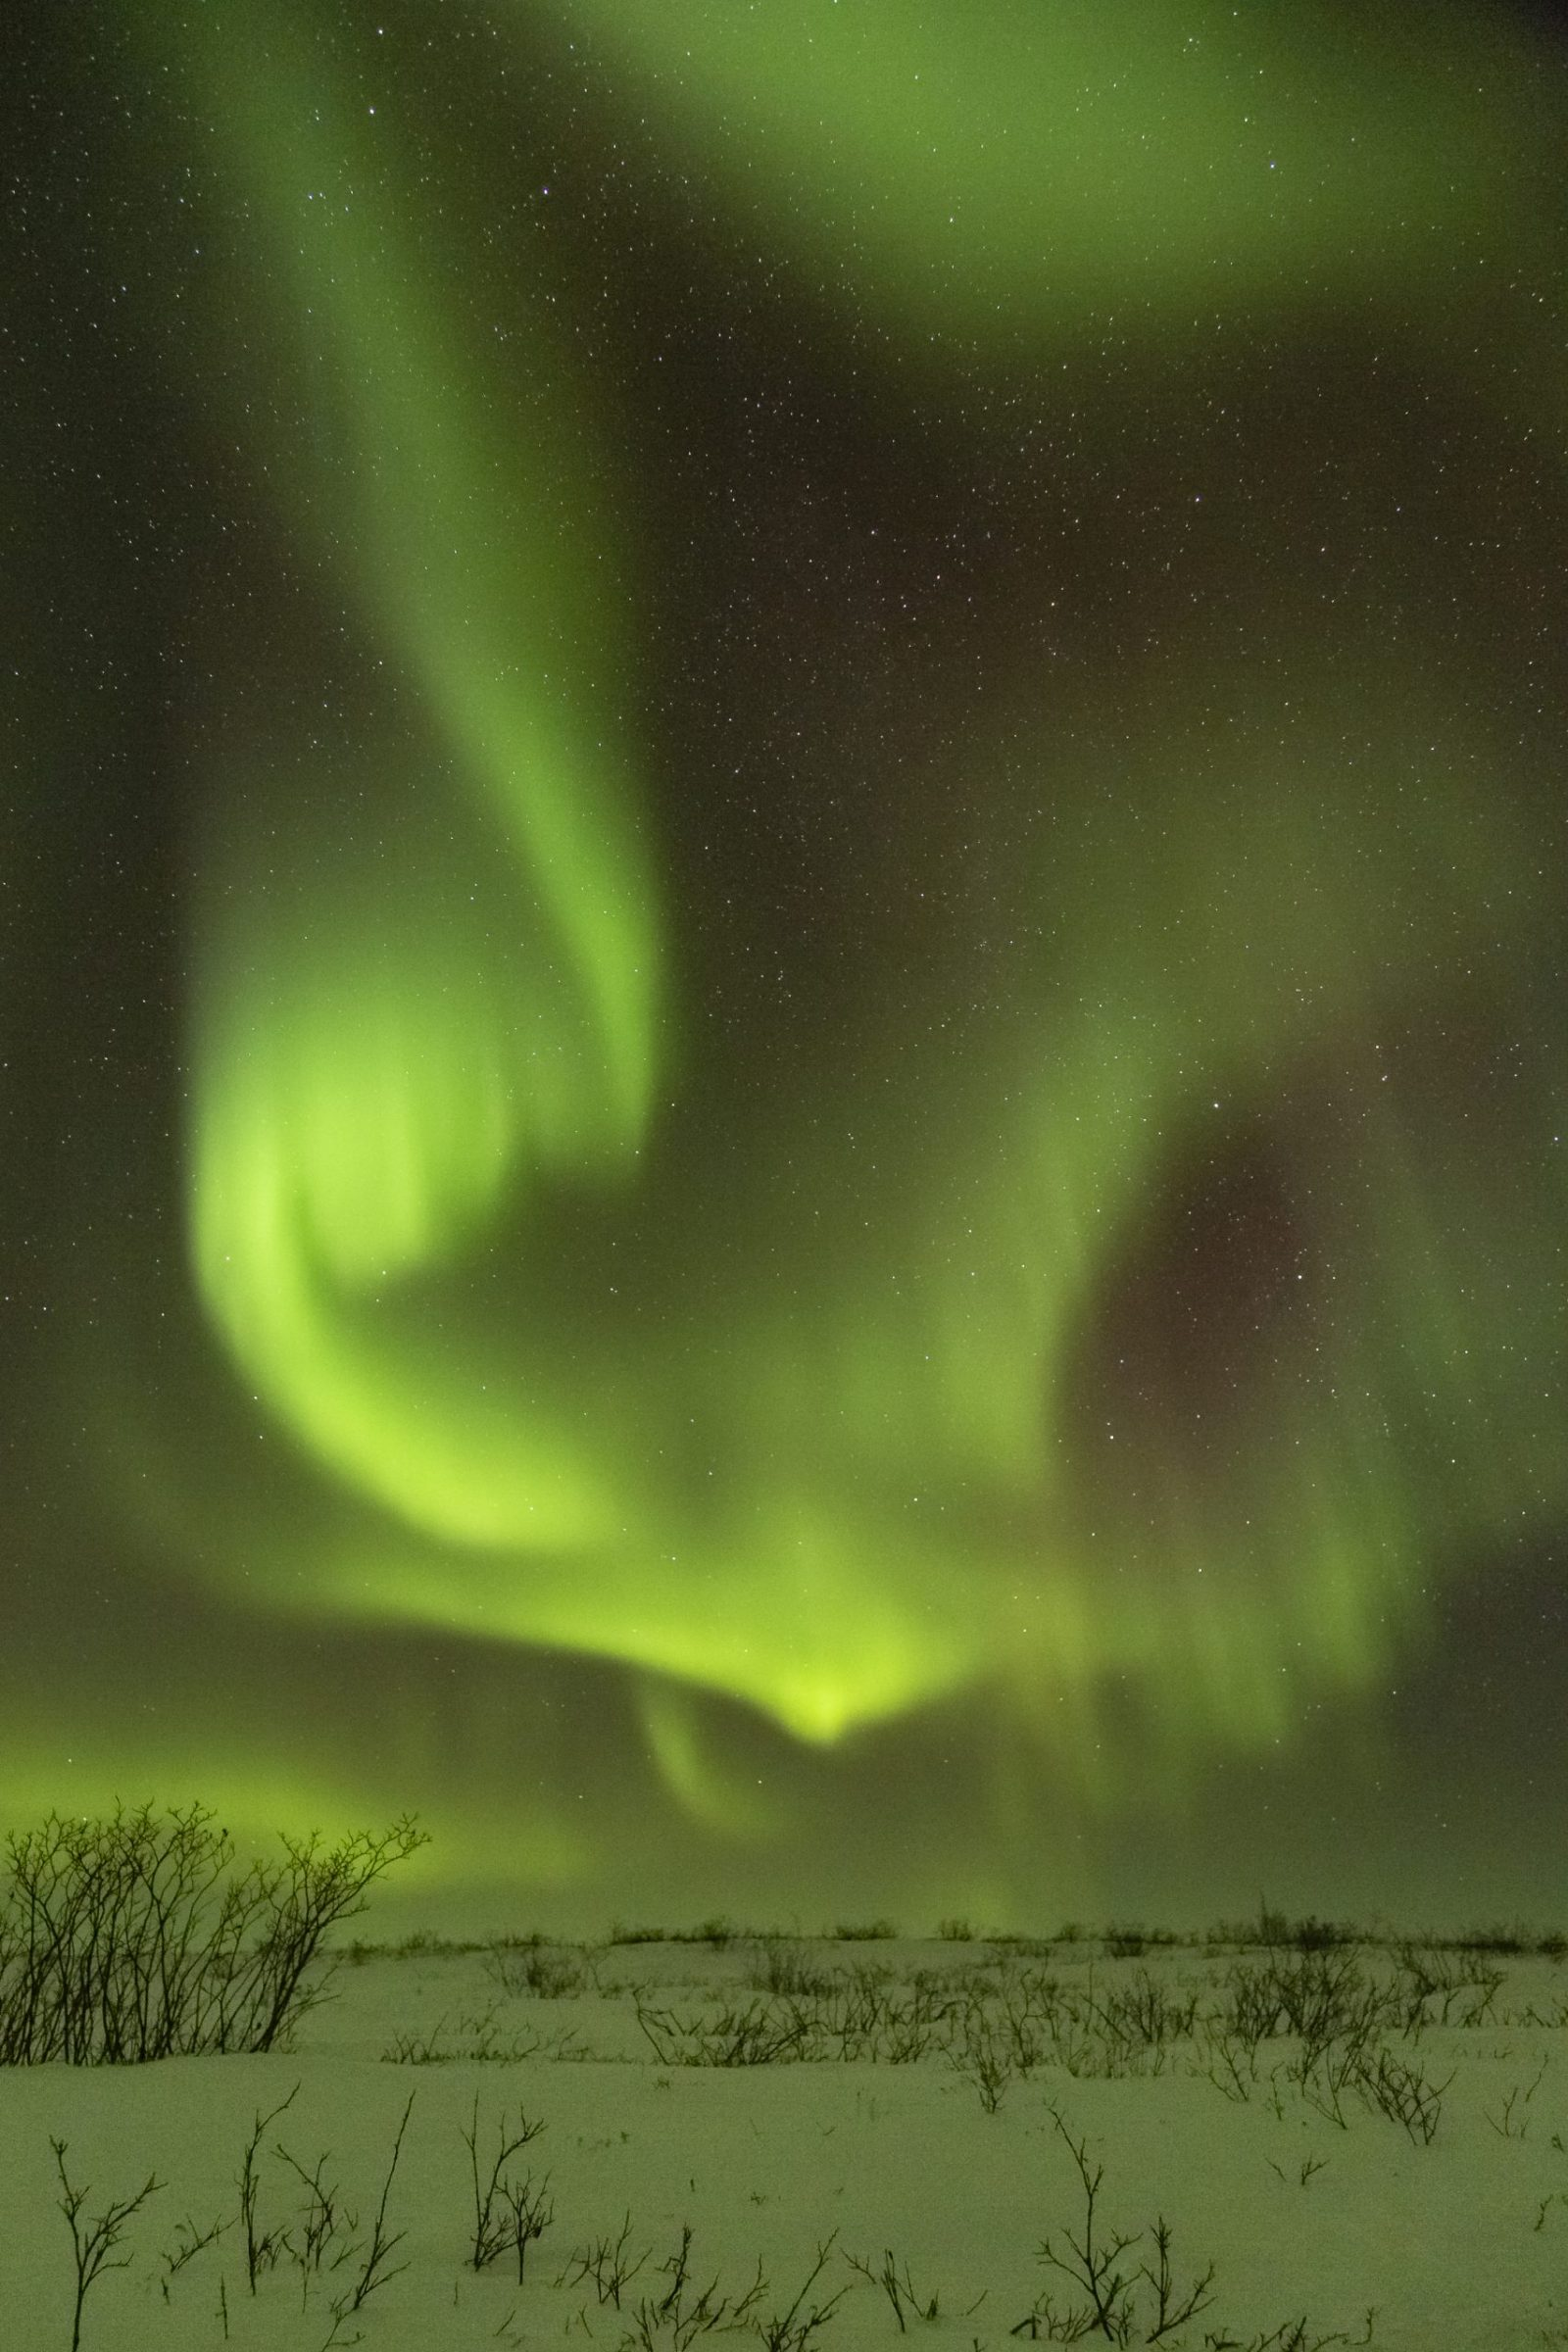 The northern lights glow above the tundra outside Kugluktuk on a cold night (-37 C) on Dec. 20. (Photo by Mathieu Dumond / Umingmak Productions Inc.)